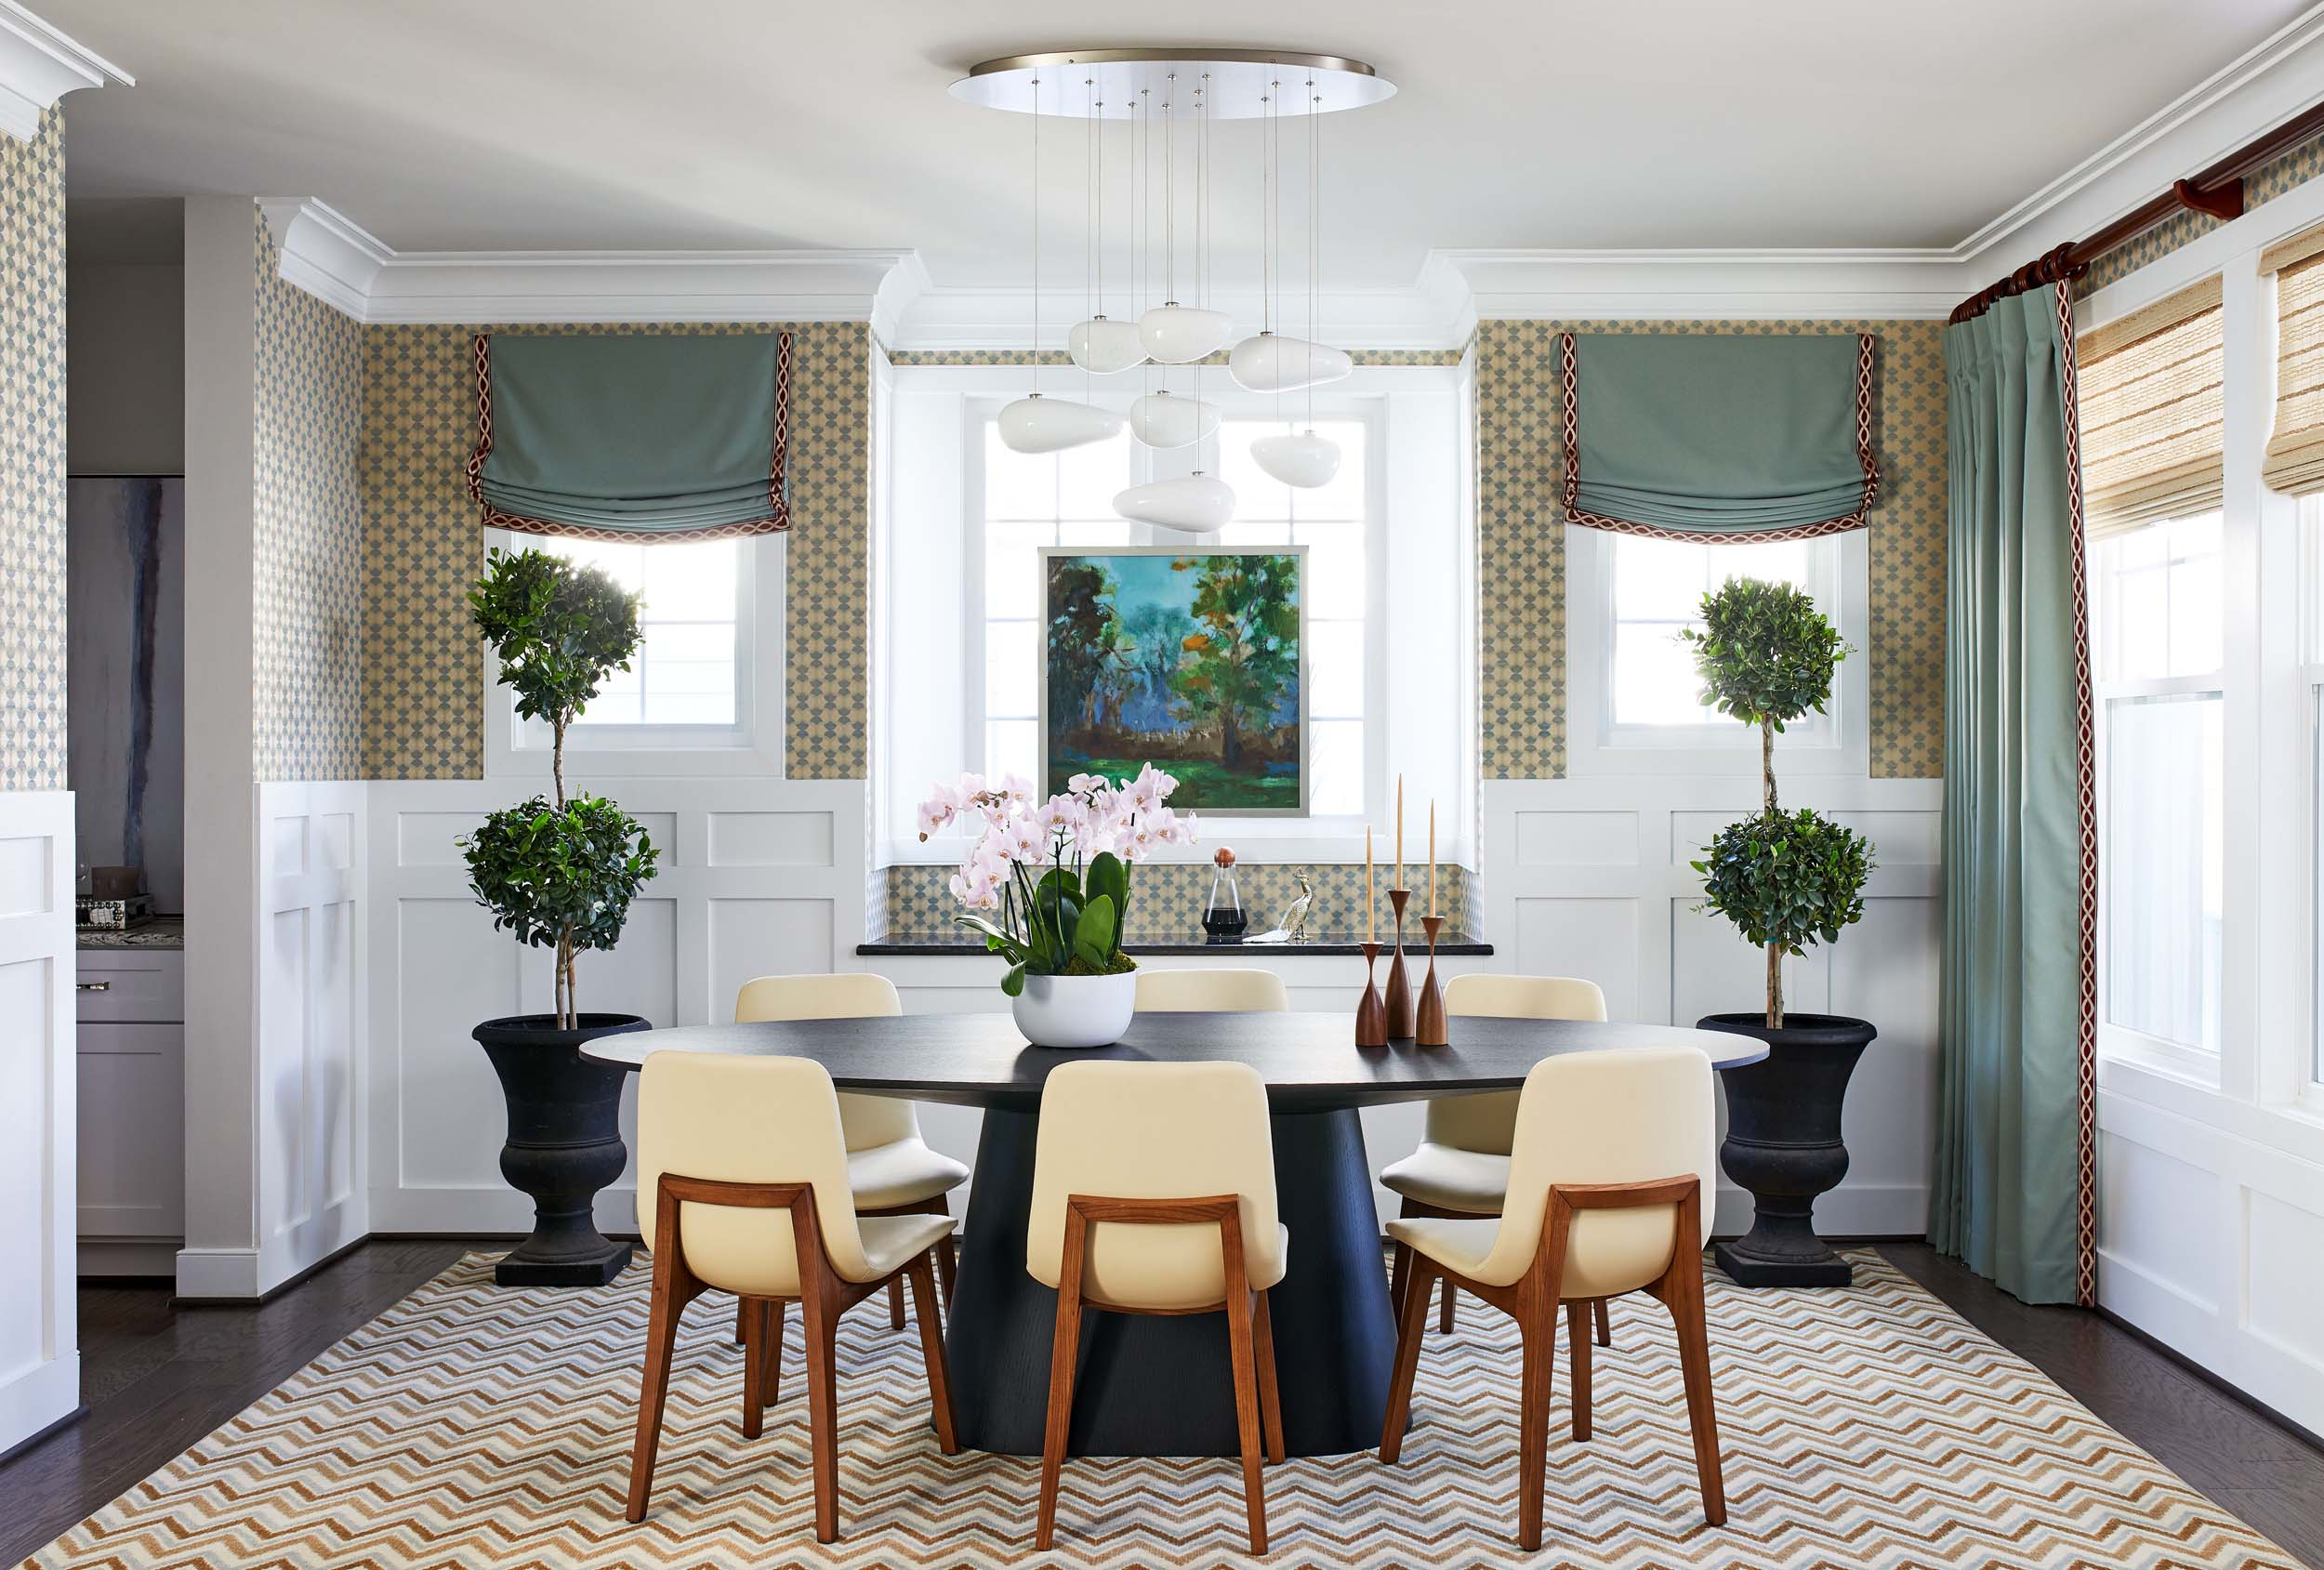 Round dining room table with modern chandelier hanging overhead best of Boston Cambridge DC top-designers Dane Austin Design